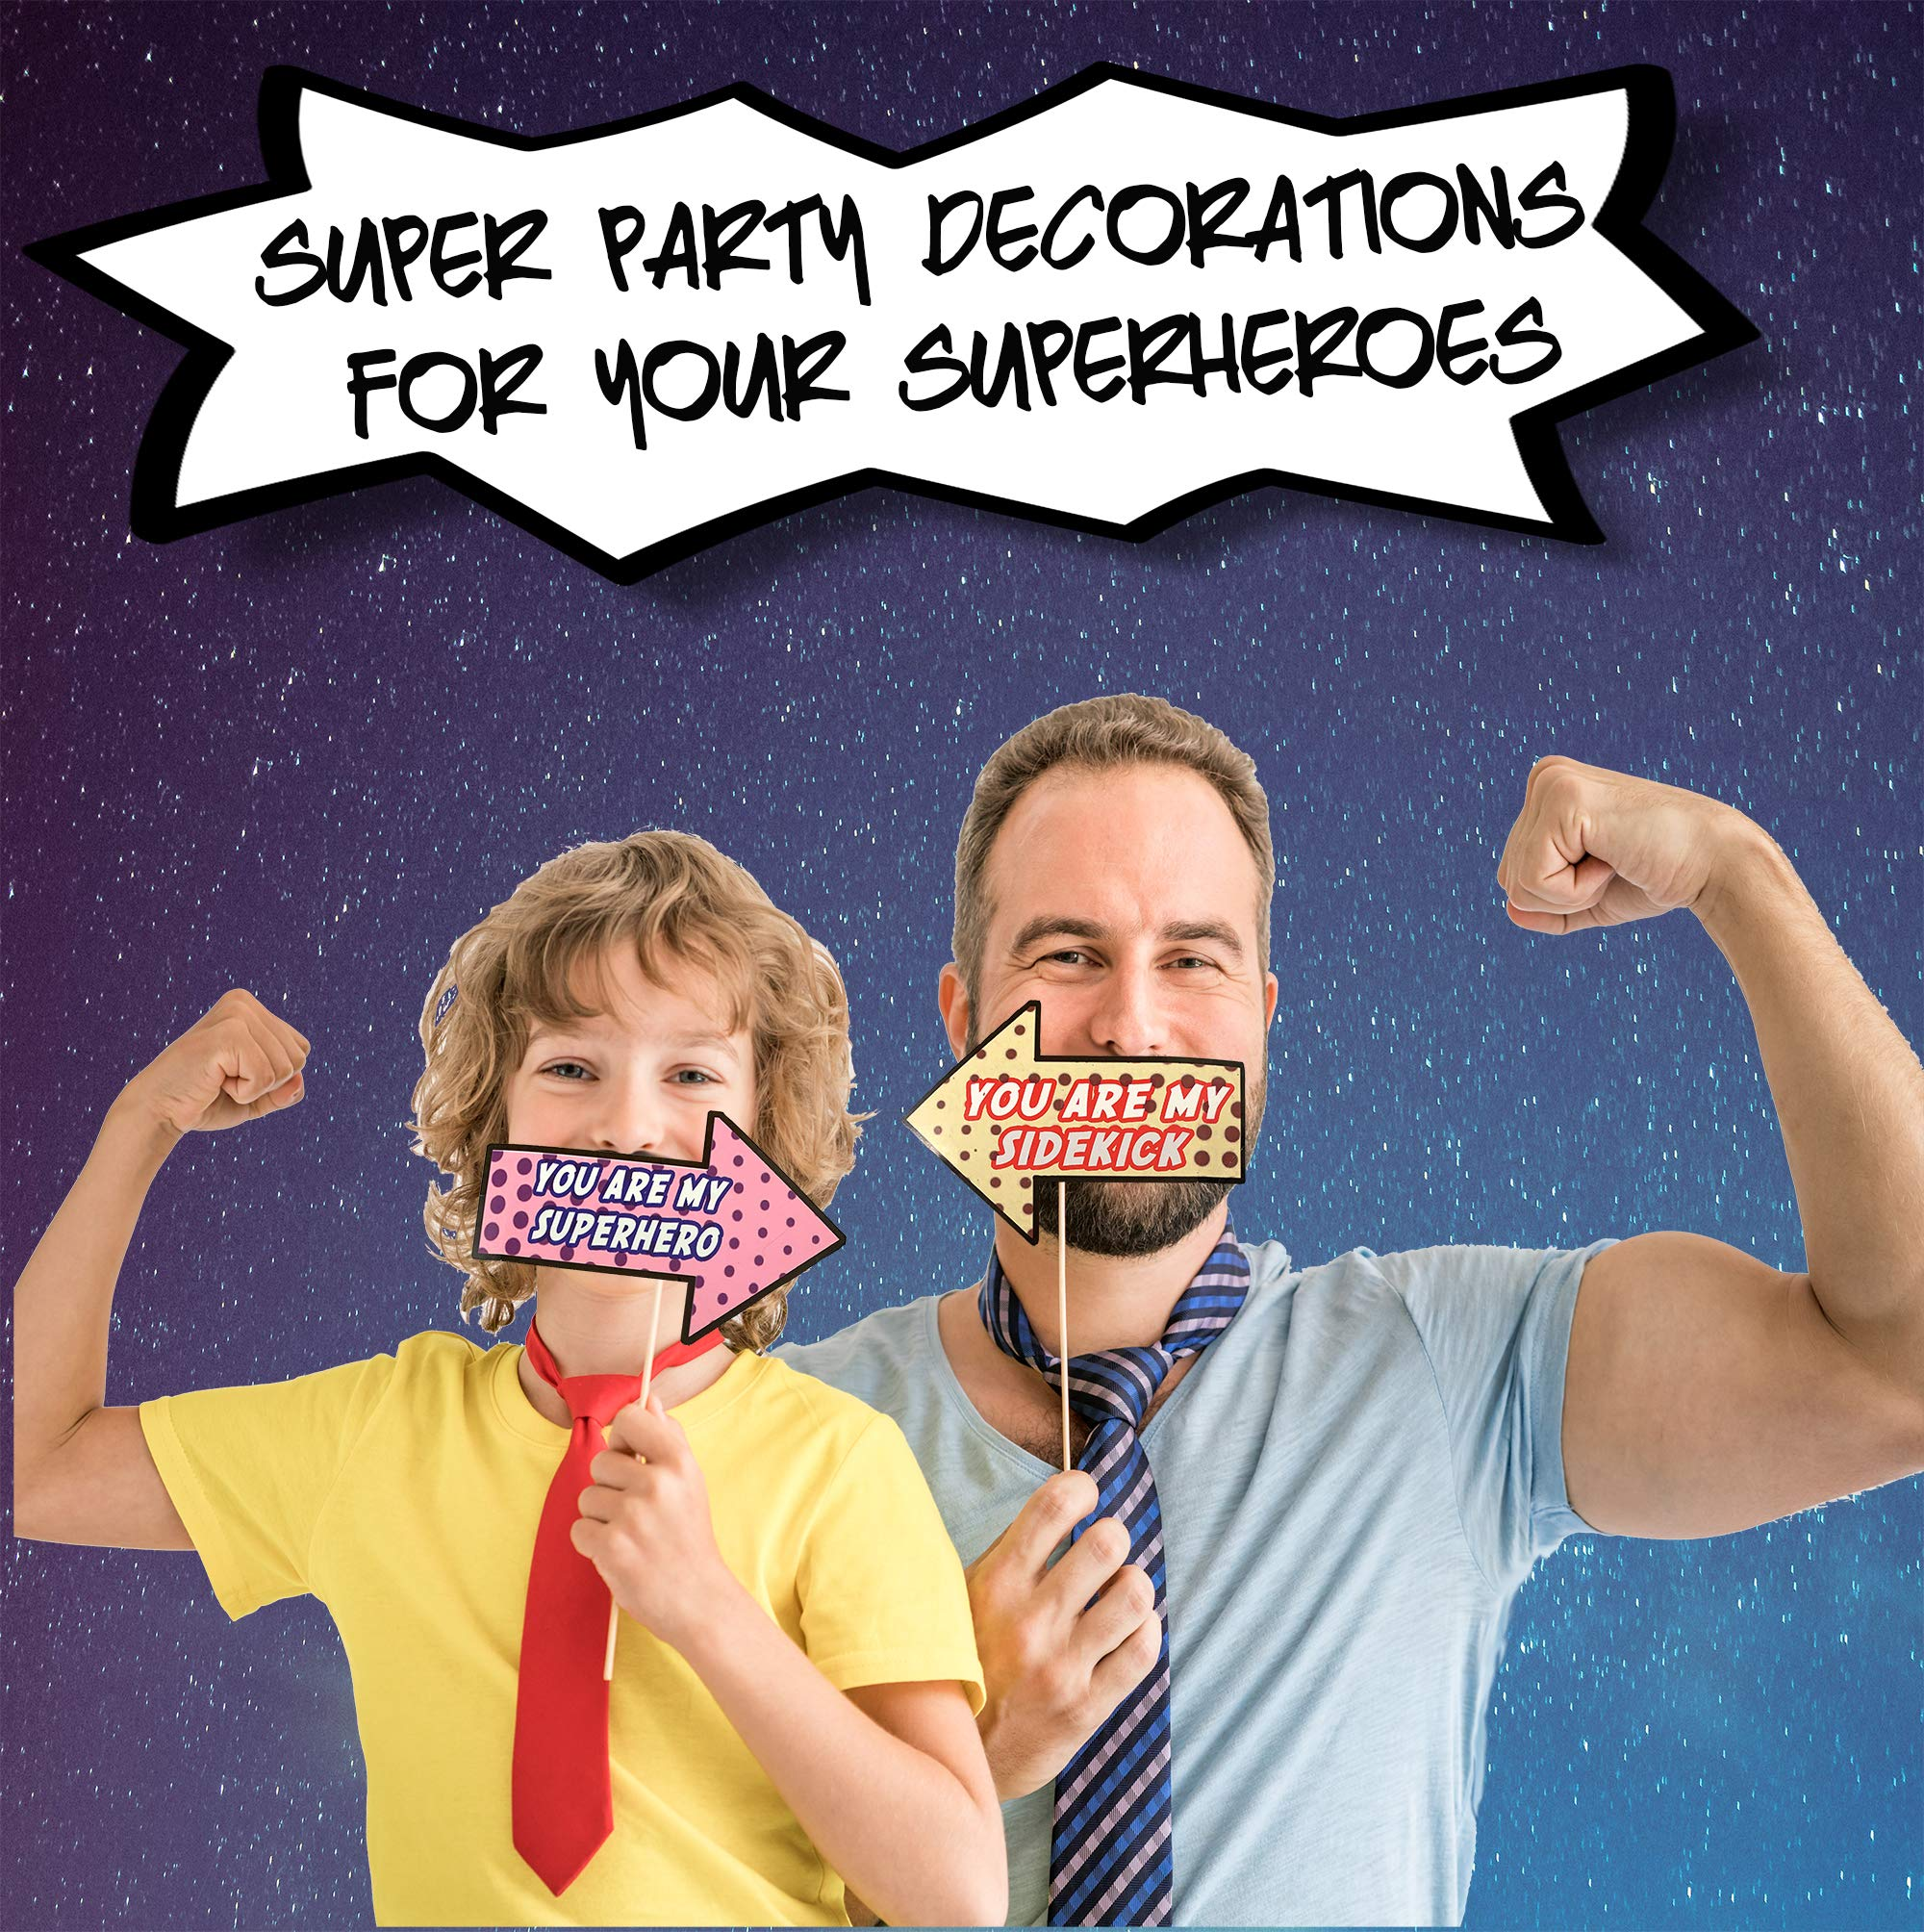 Superhero Comics Photo Booth Props – Ultimate Comic superhero Decorations Set for Selfie & Photo Booth Pics – Colorful Superhero Props and Masks– 35 Super Hero Party Supplies Set by Scapa Pro